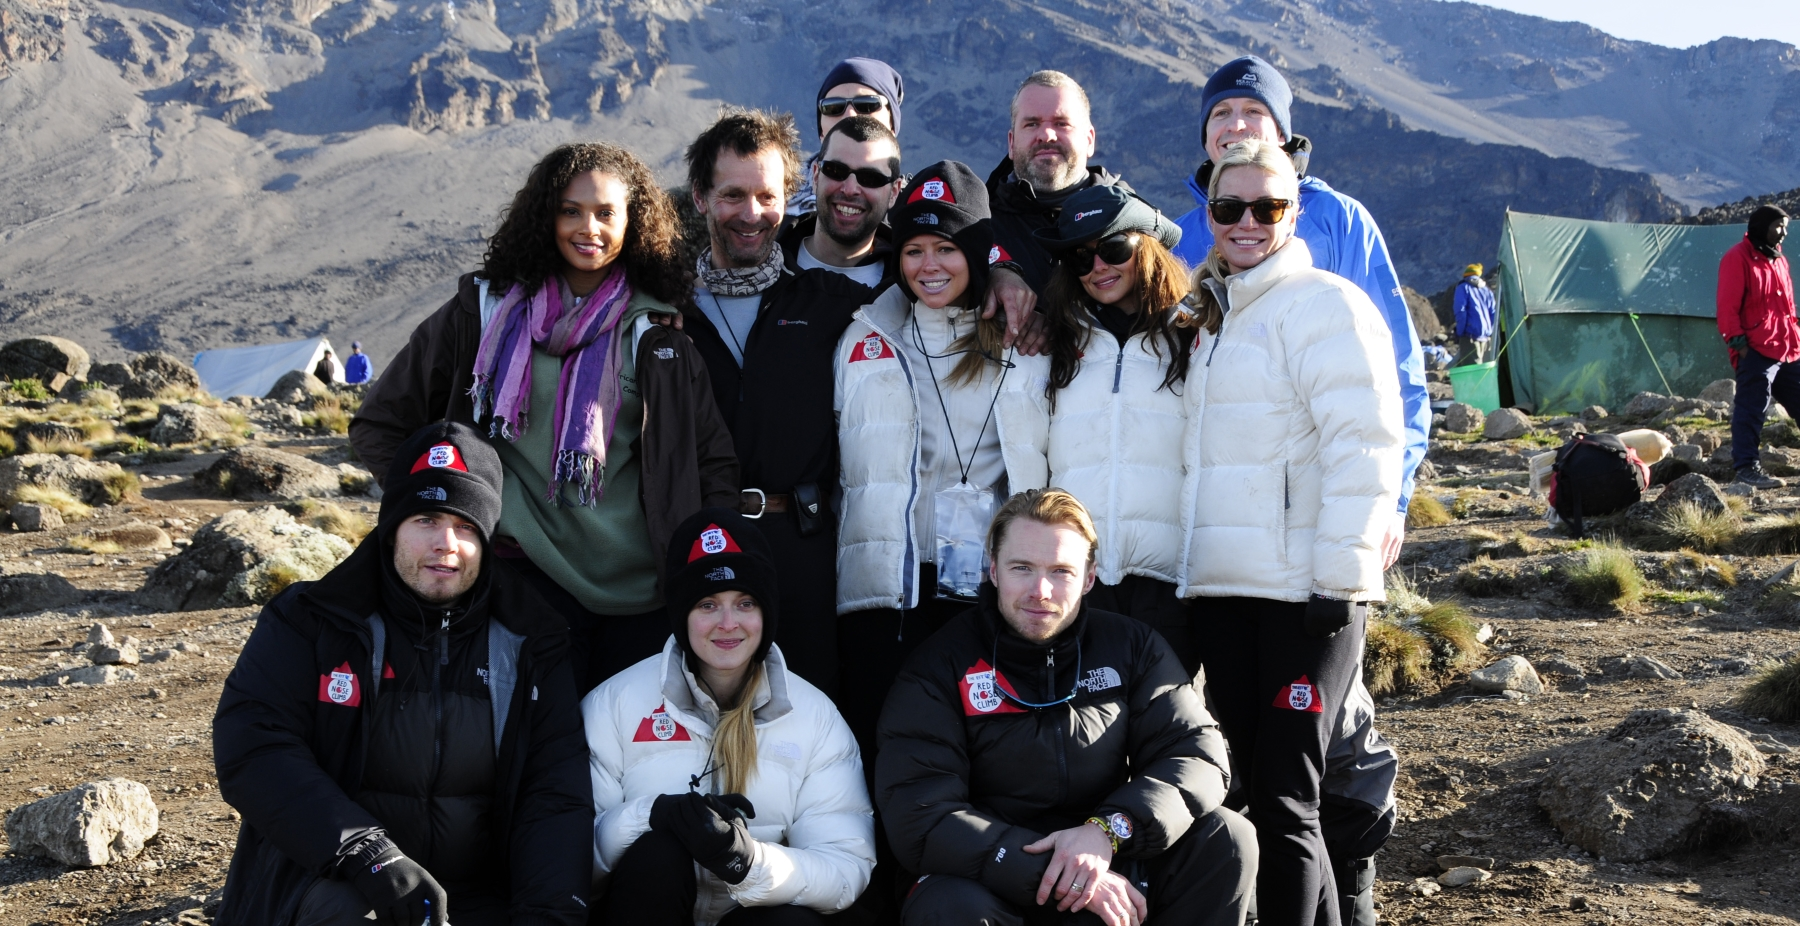 Celebrity group photo during 2009 Red Nose Day Kilimanjaro climb in support of Comic Relief